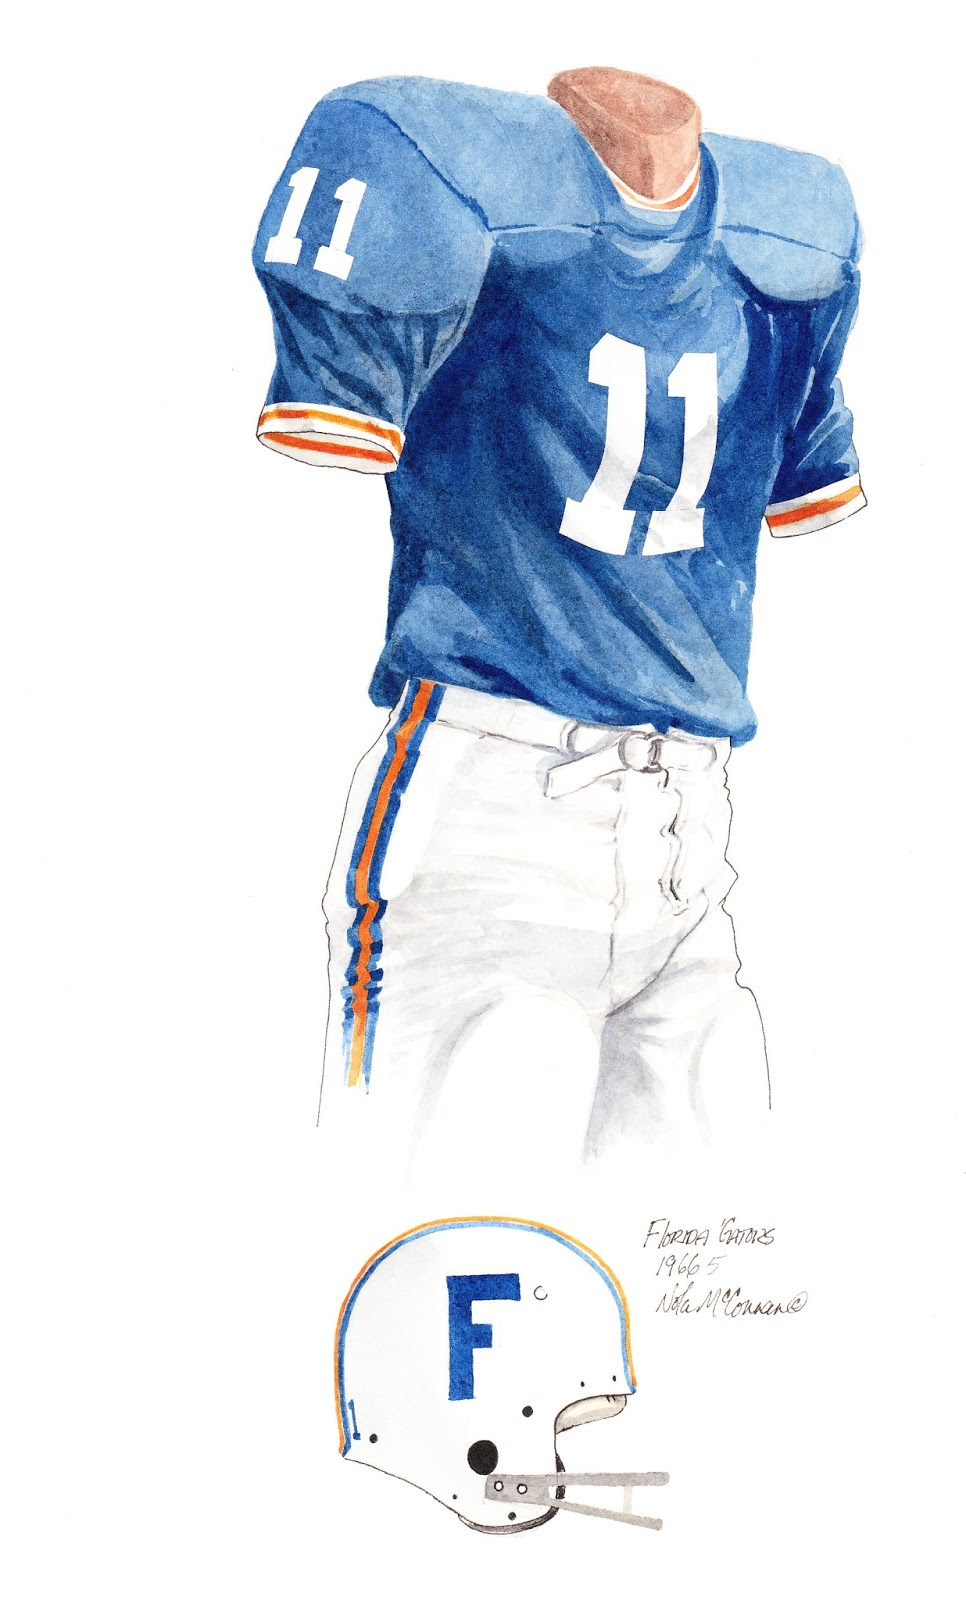 fc3c029a5 1966 University of Florida Gators football uniform original art for sale